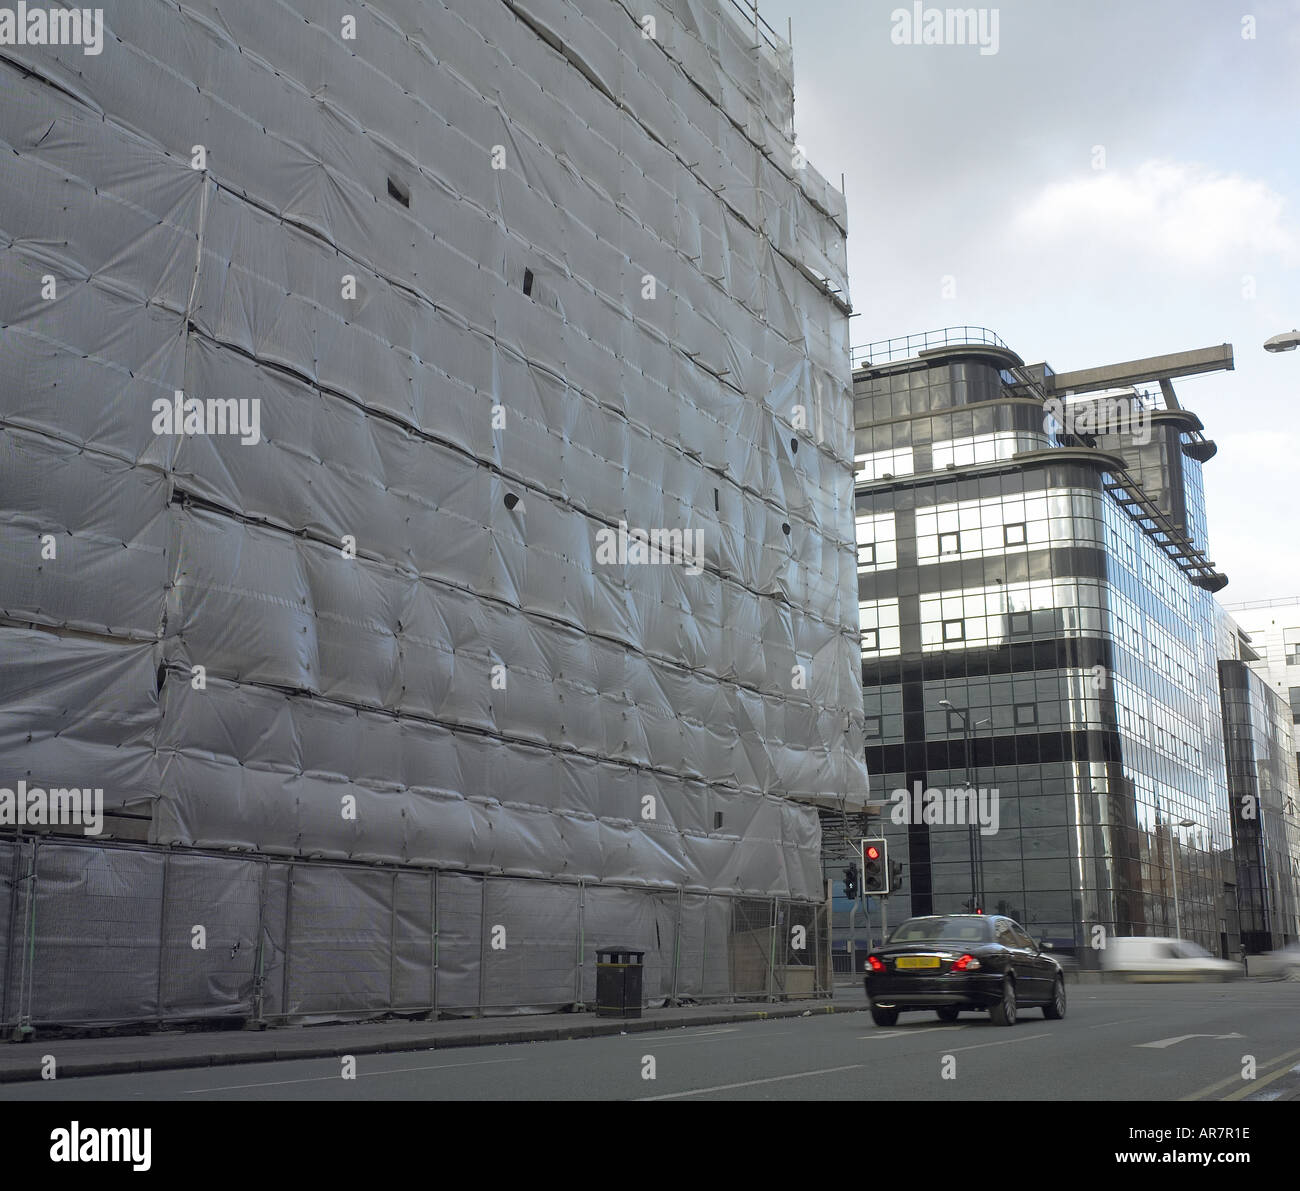 Plastic wrap construction on Ancoats building Manchester - Stock Image